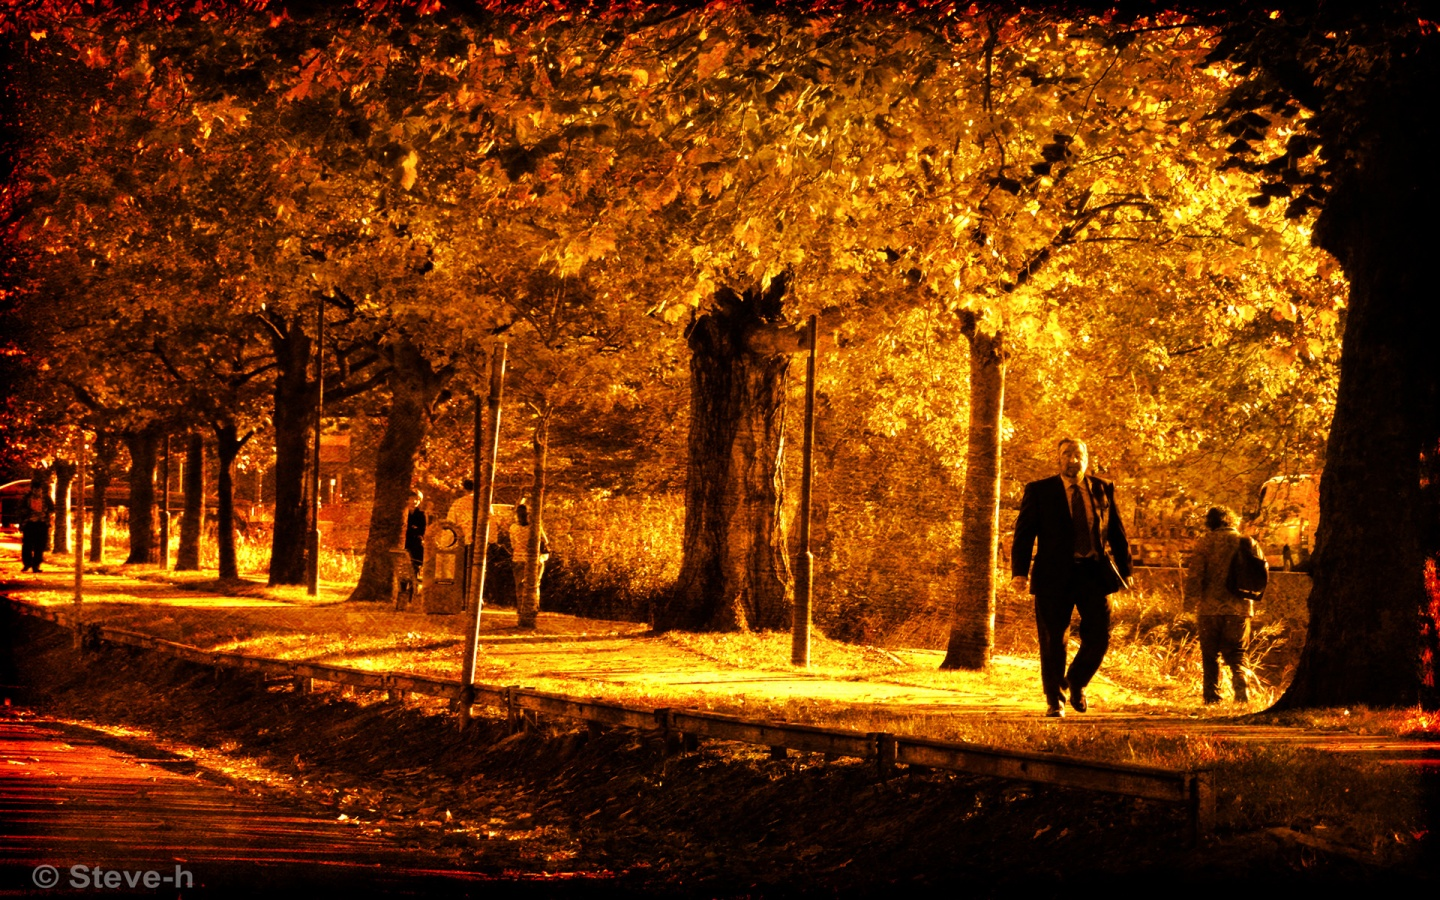 Autumn gold 1440x900 wallpaper download page 816046 1440x900